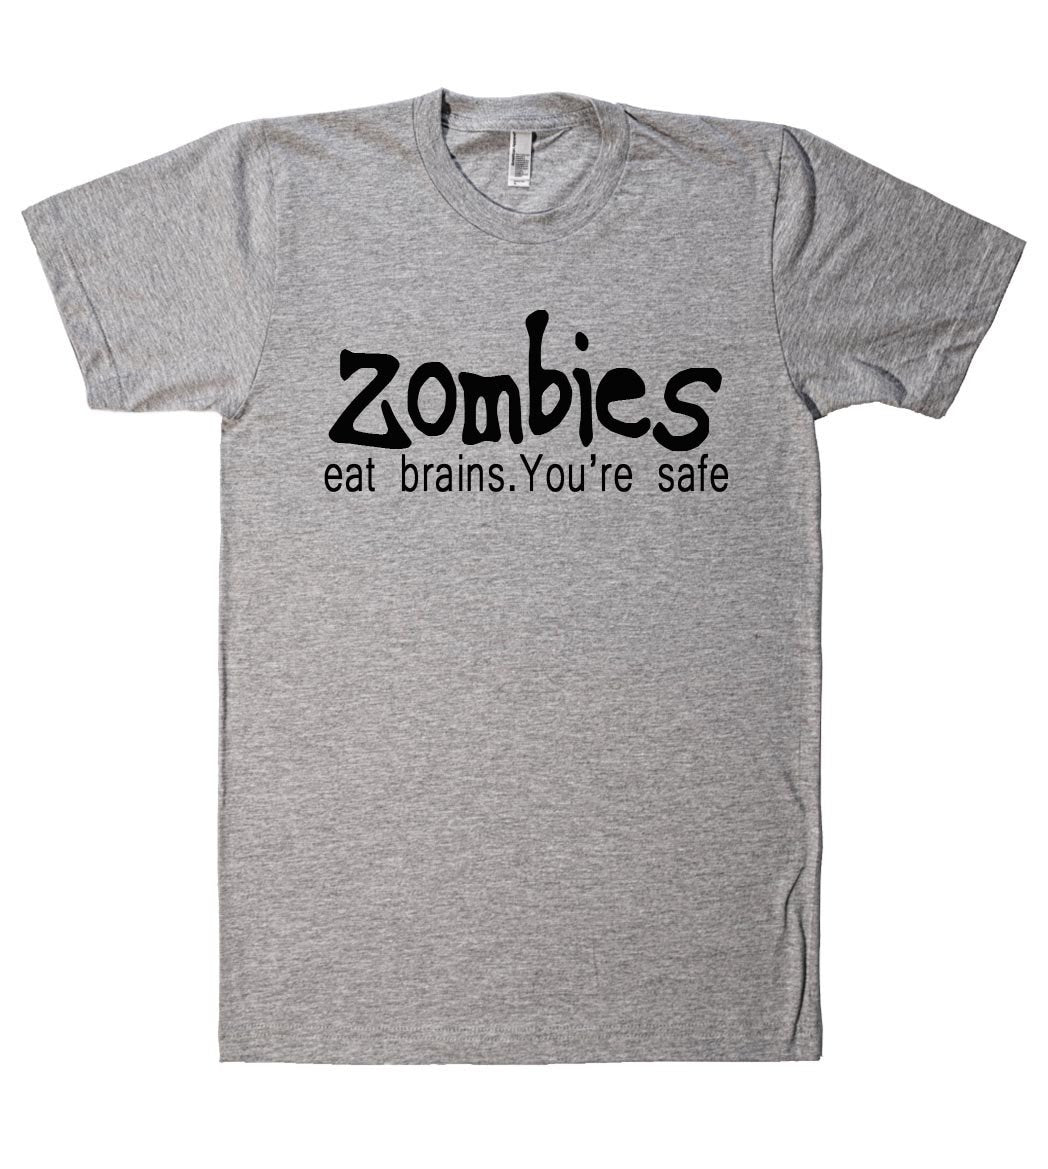 zombies eat brains youre safe tshirt - Shirtoopia